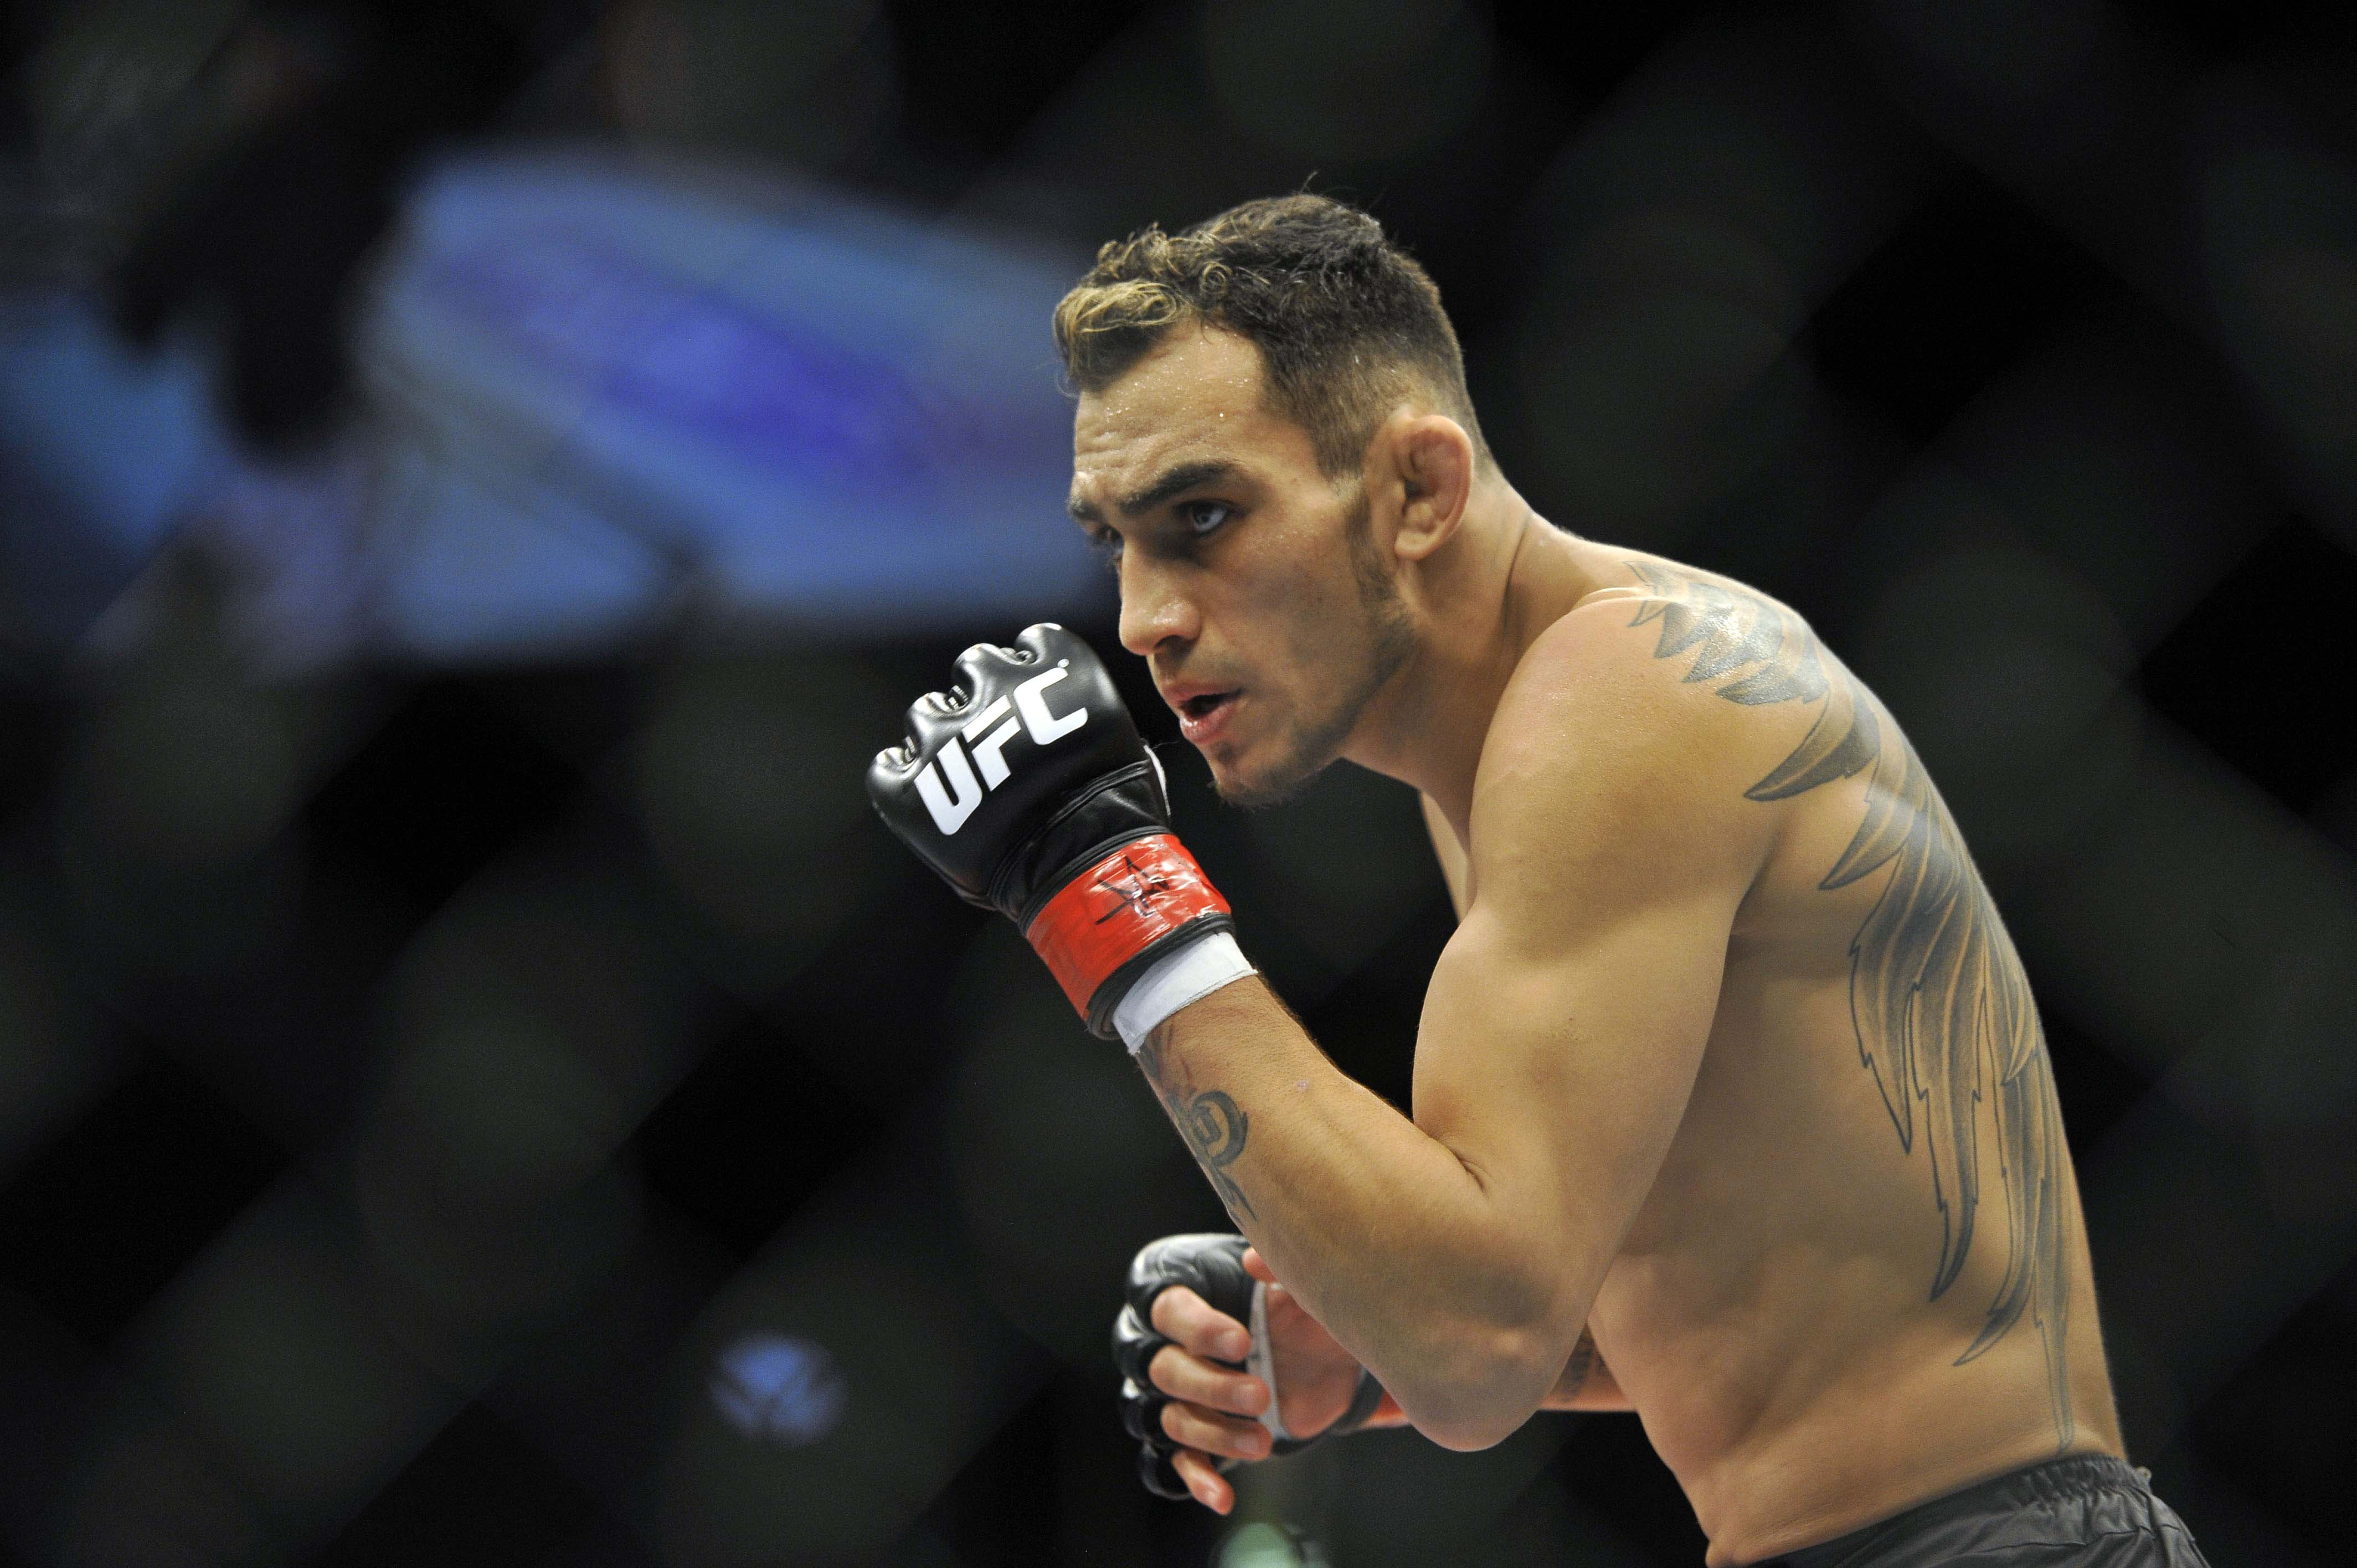 Tony Ferguson is willing to face either UFC lightweight champ Khabib Nurmagomedov or former titleholder Conor McGregor but in an ideal world hed